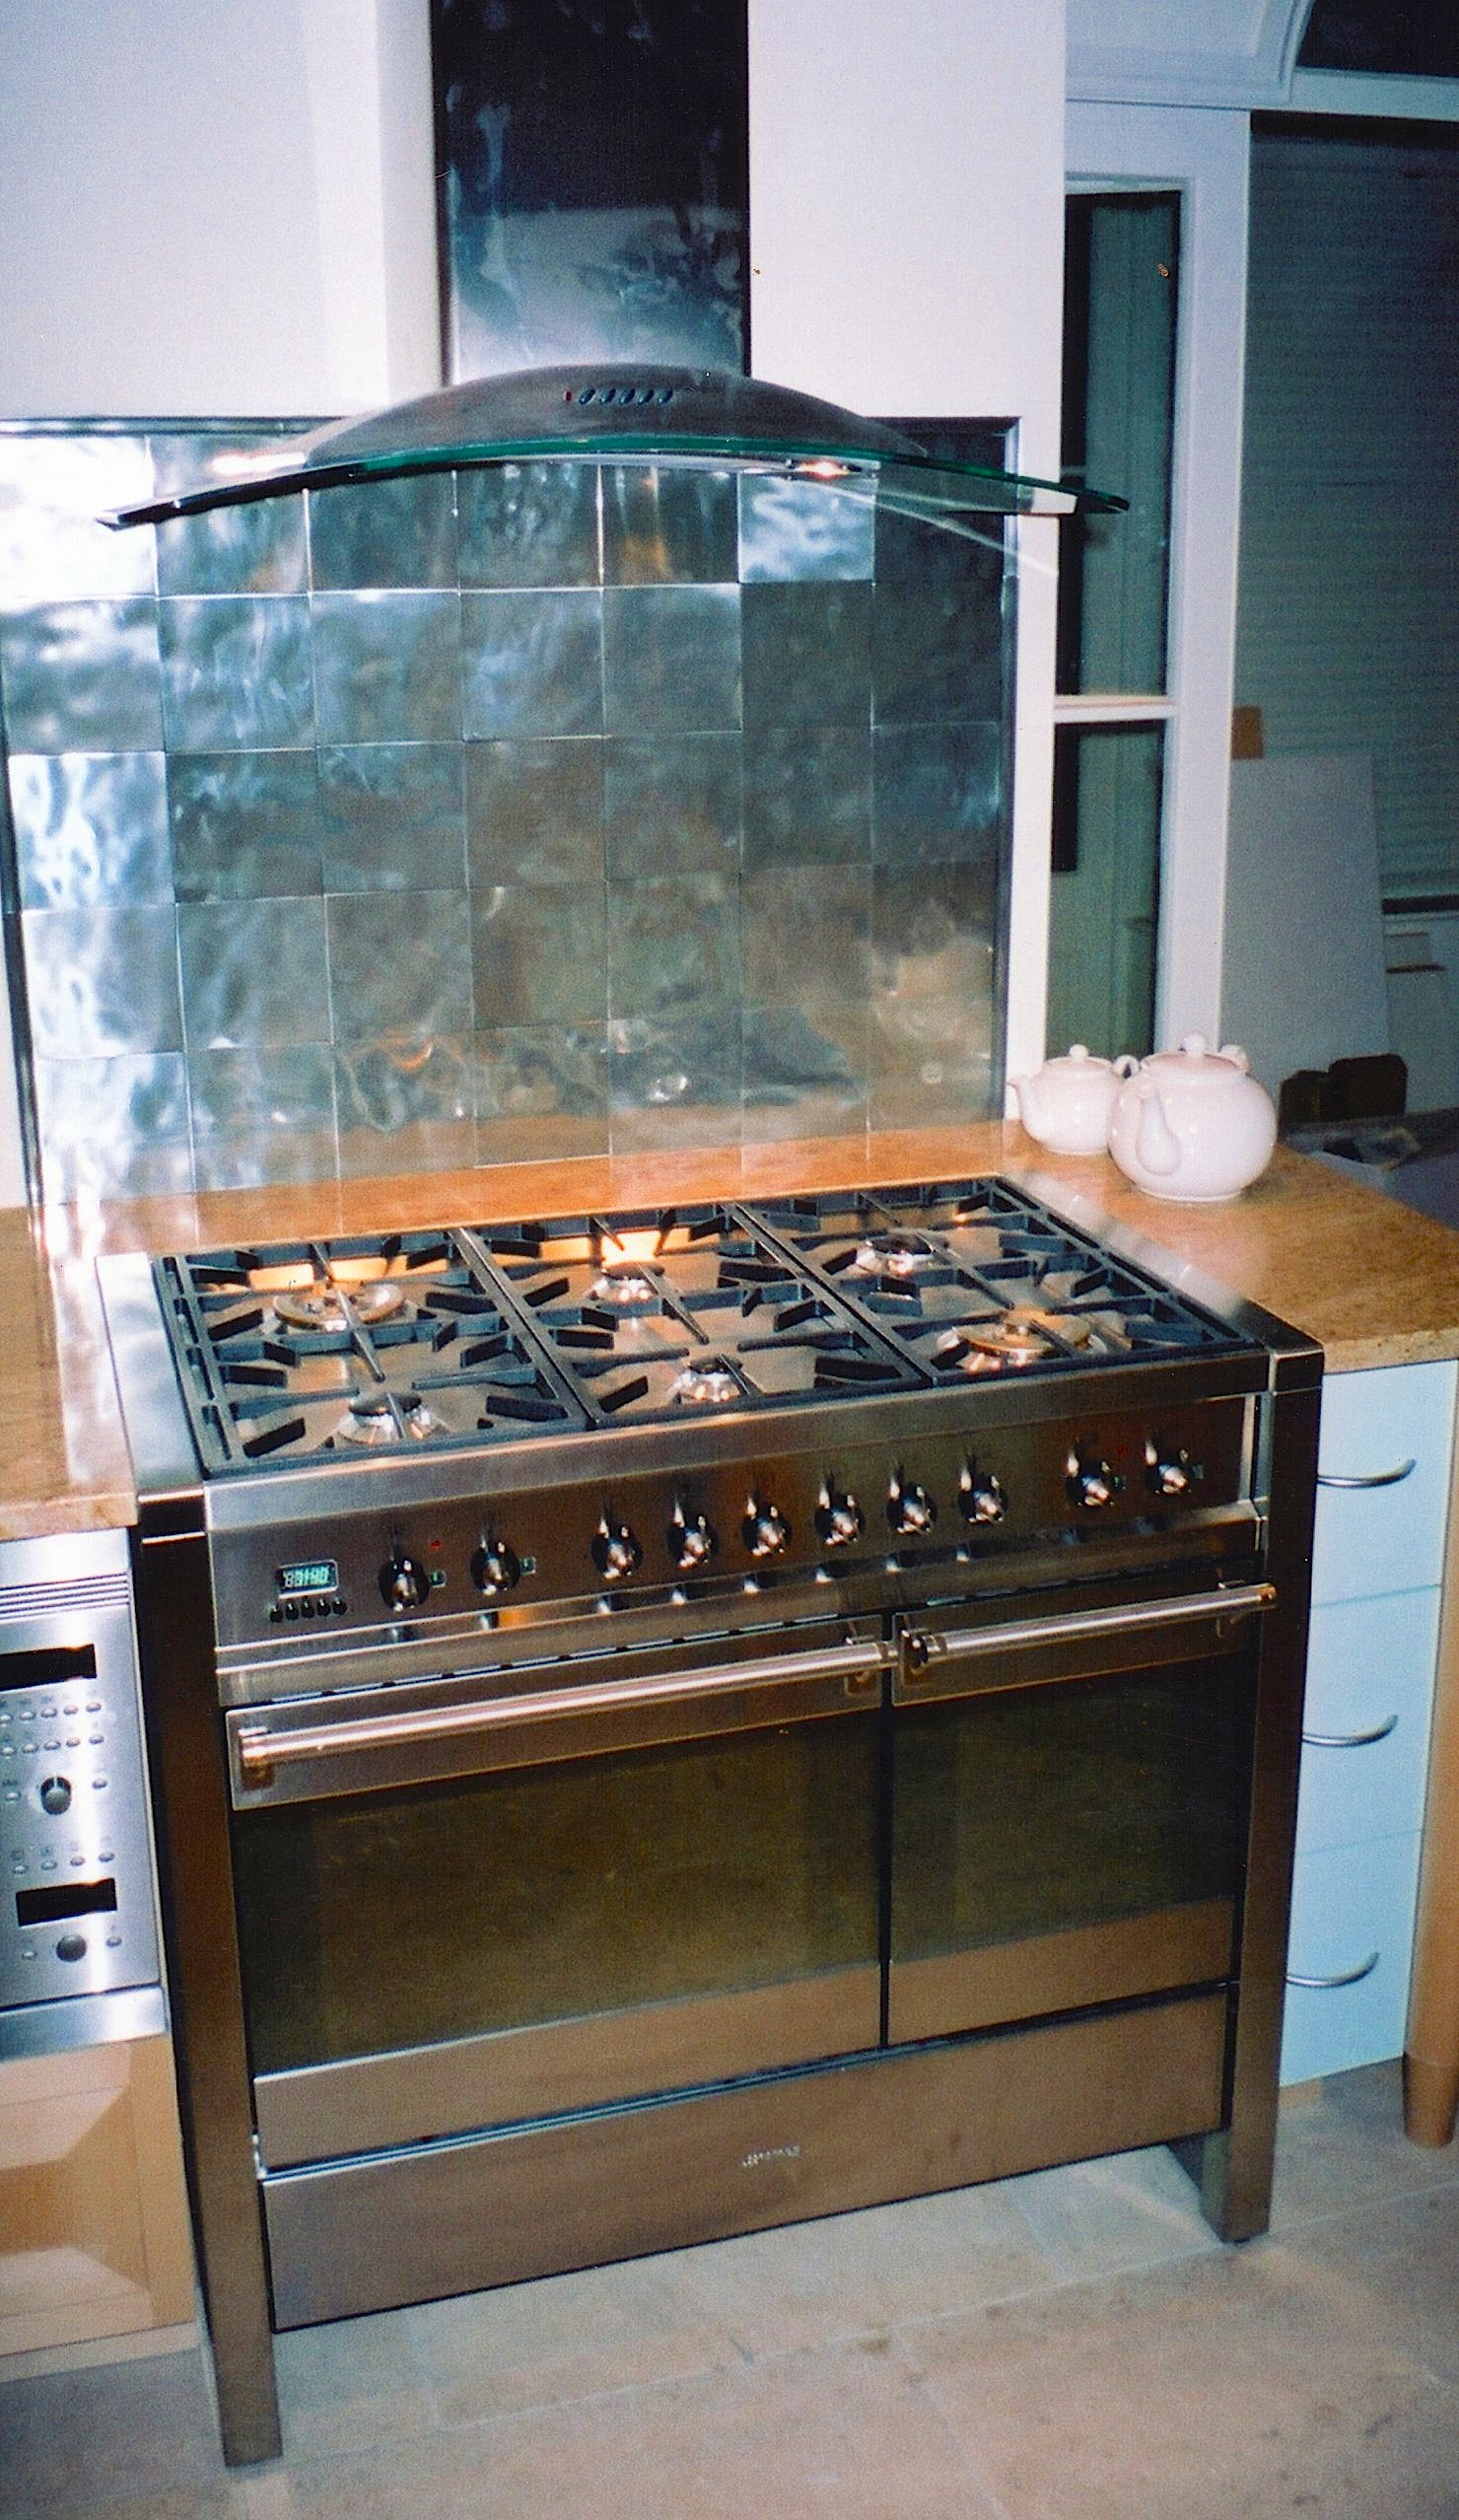 Cooker-With-Hammered-Stainless-Steel-Wall-Tiles